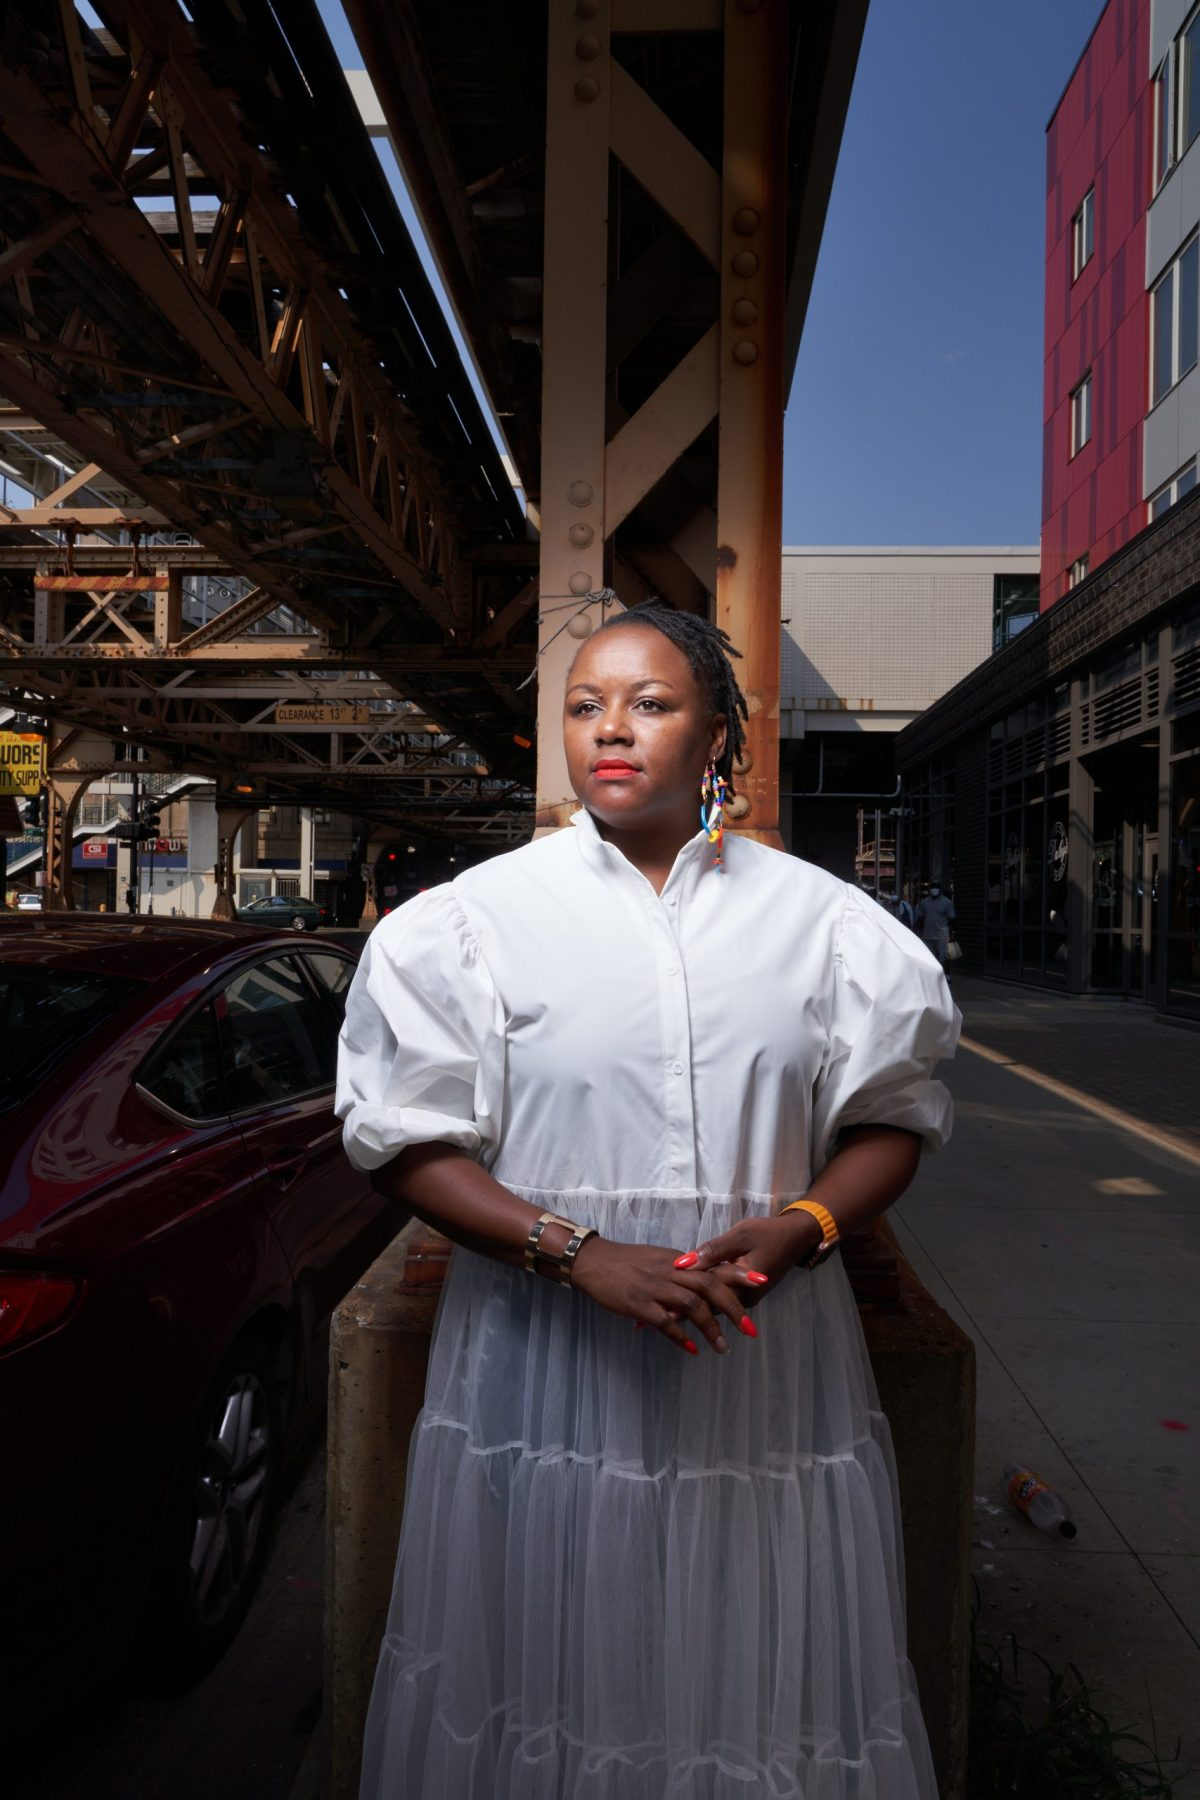 Woman in white dress underneath elevated train tracks